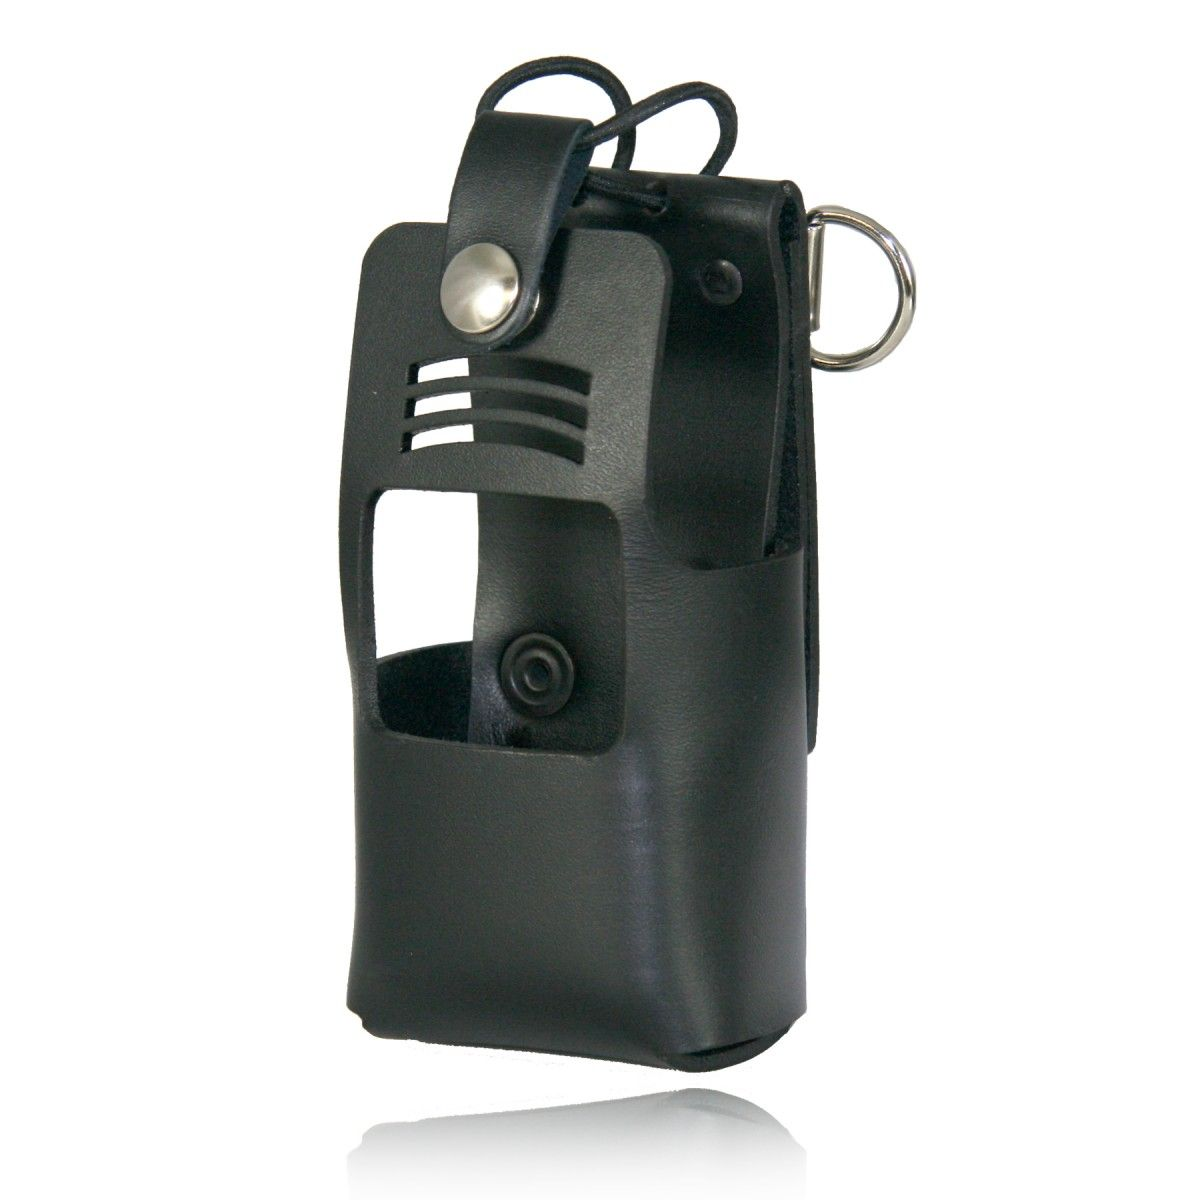 Firefighter's Radio Holder for Vertex Standard VX-924